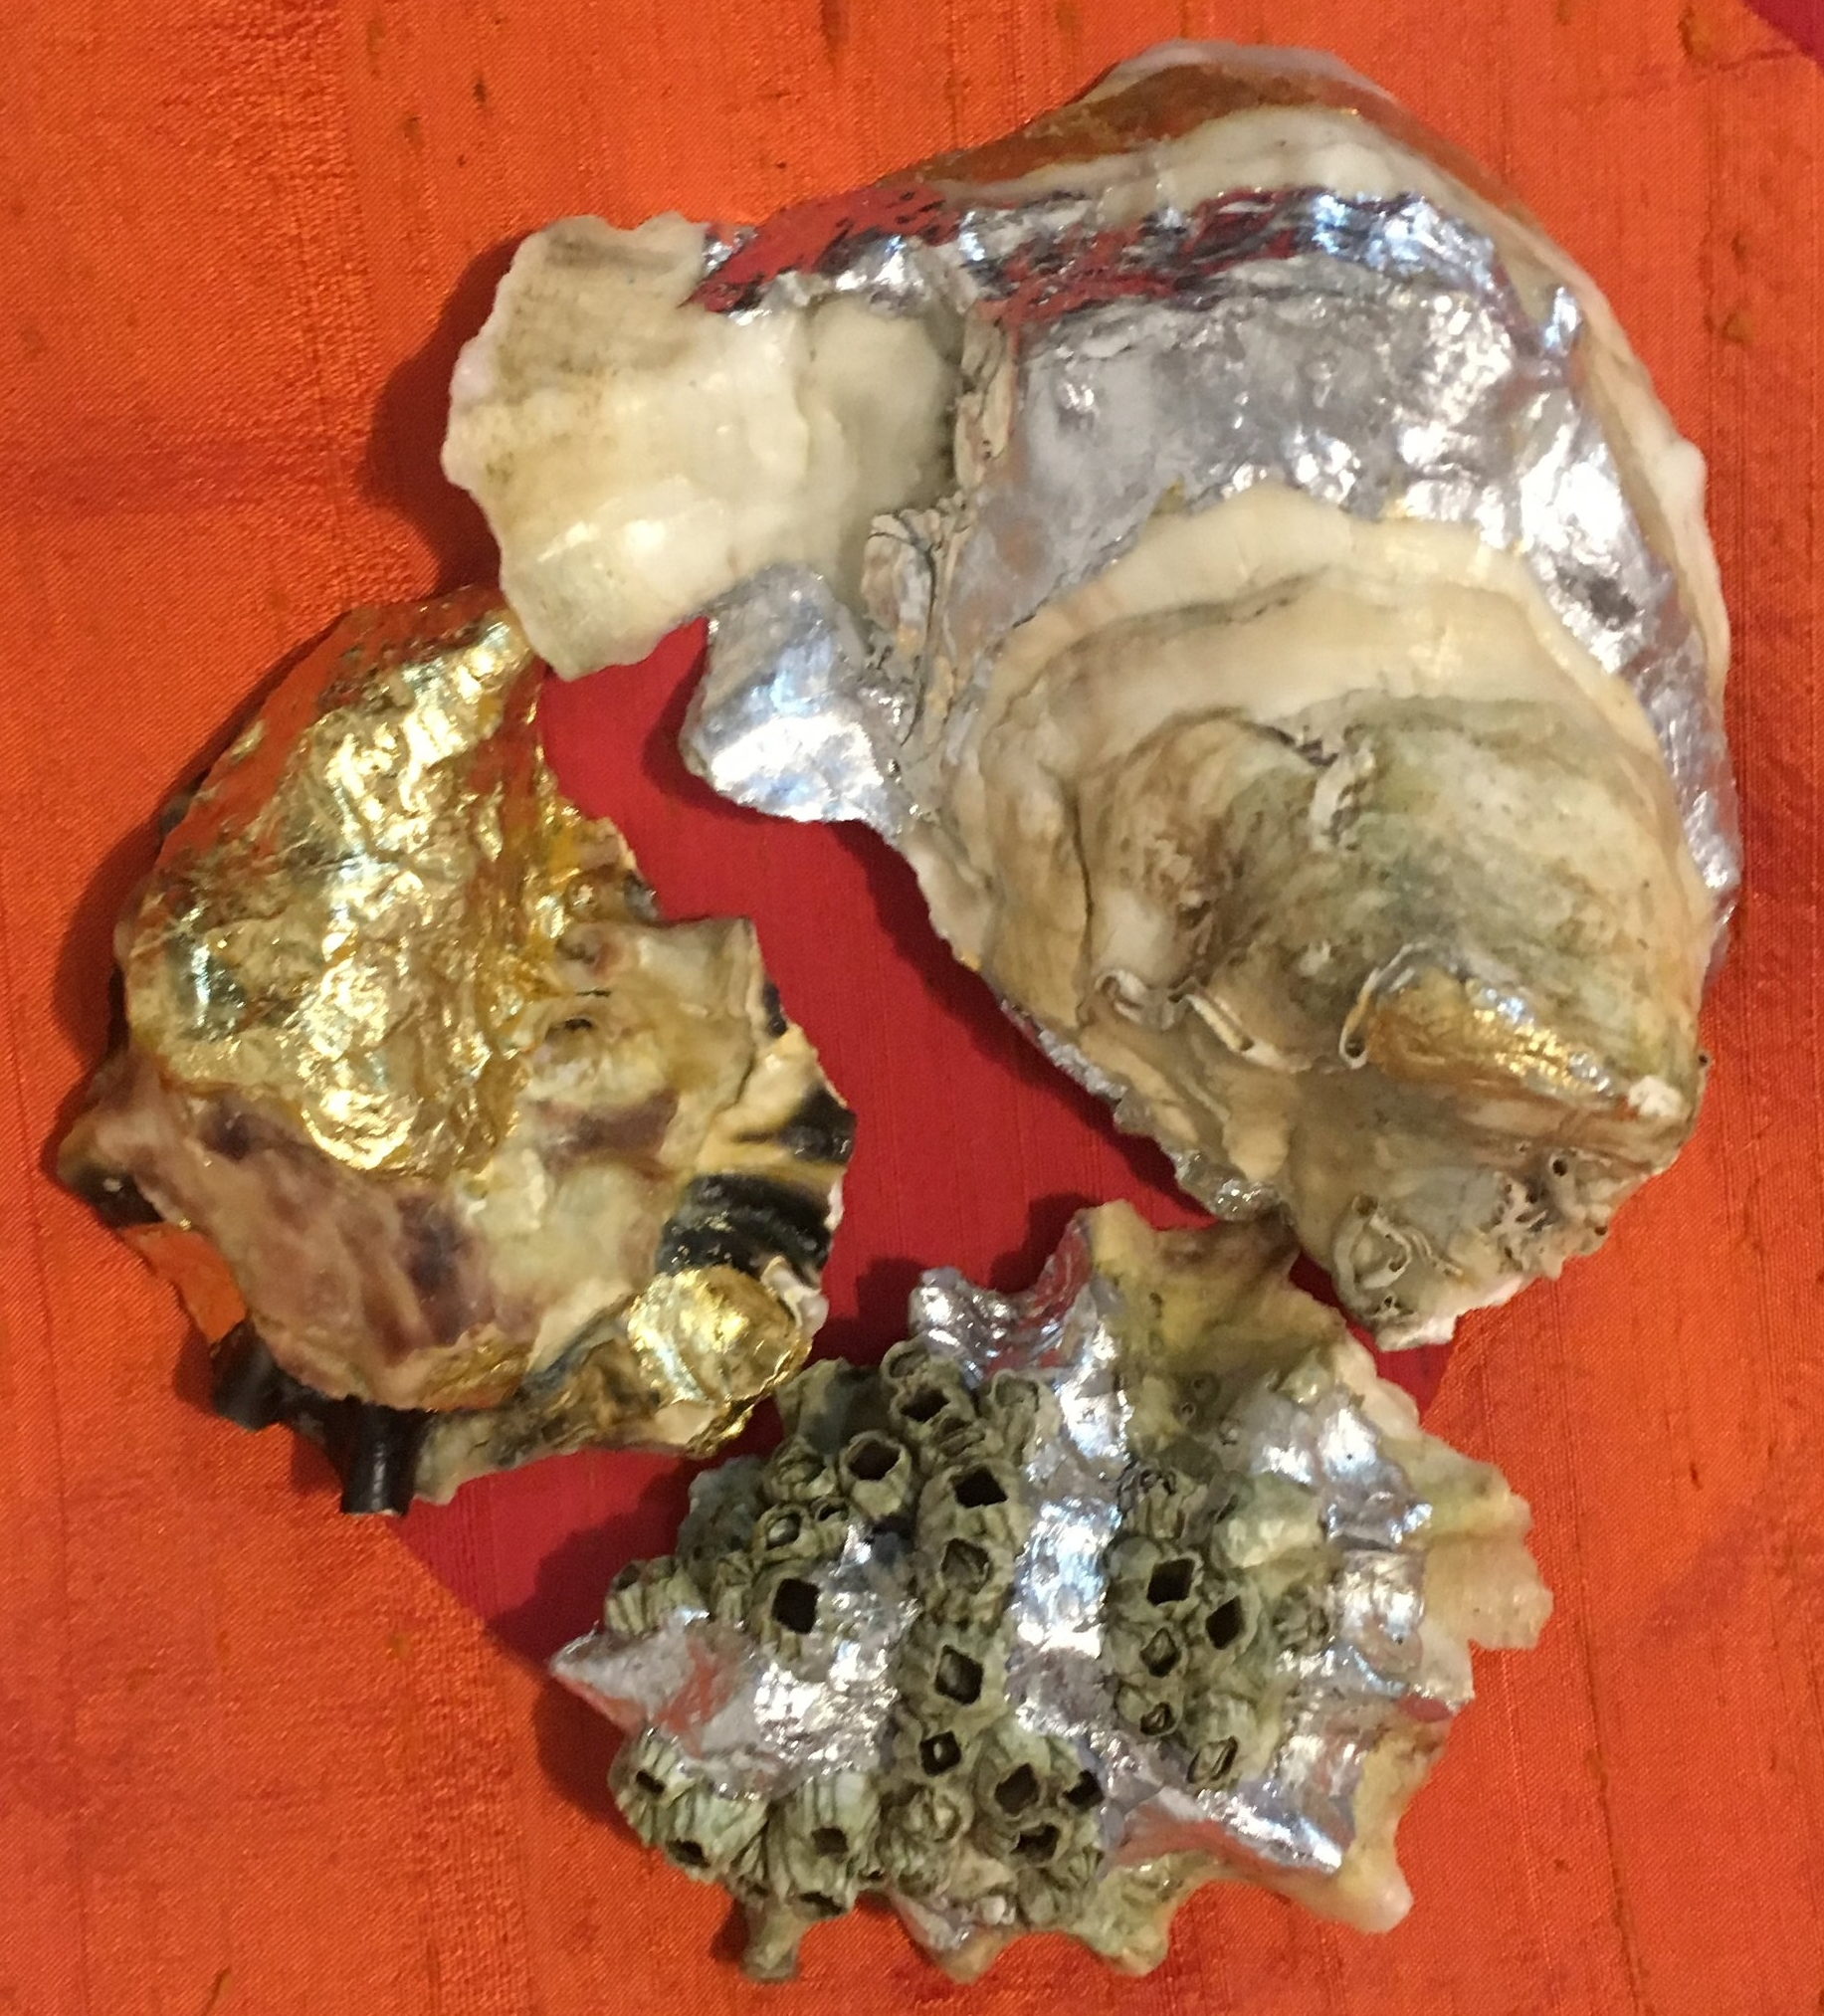 "Novelty Assortment of Oysters ""Rockefeller""  Fanny Bay Oyster with barnacles adorned with silver leaf, Moonstone accentuated with stripes of silver and gold leaf, Mystery Oyster (TBD)  with determined gold leaf."